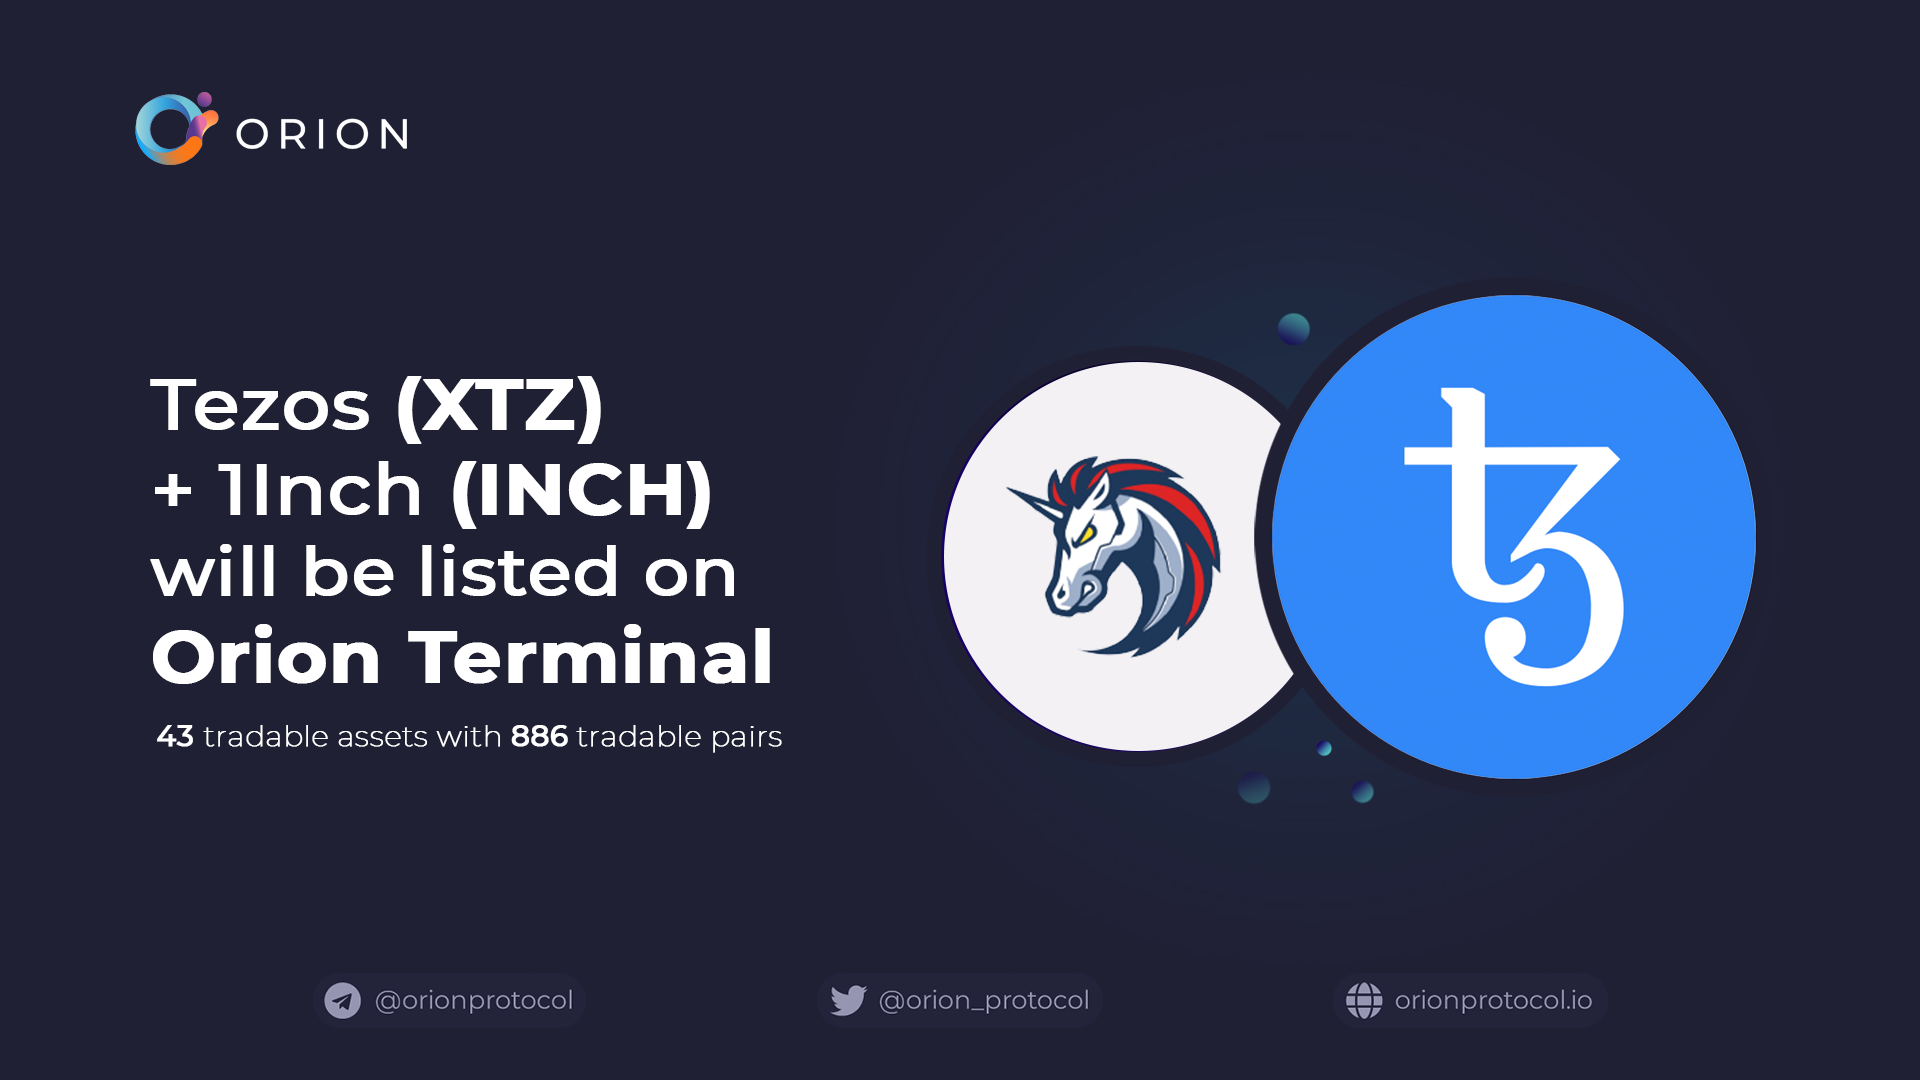 XTZ + INCH added to Orion Terminal